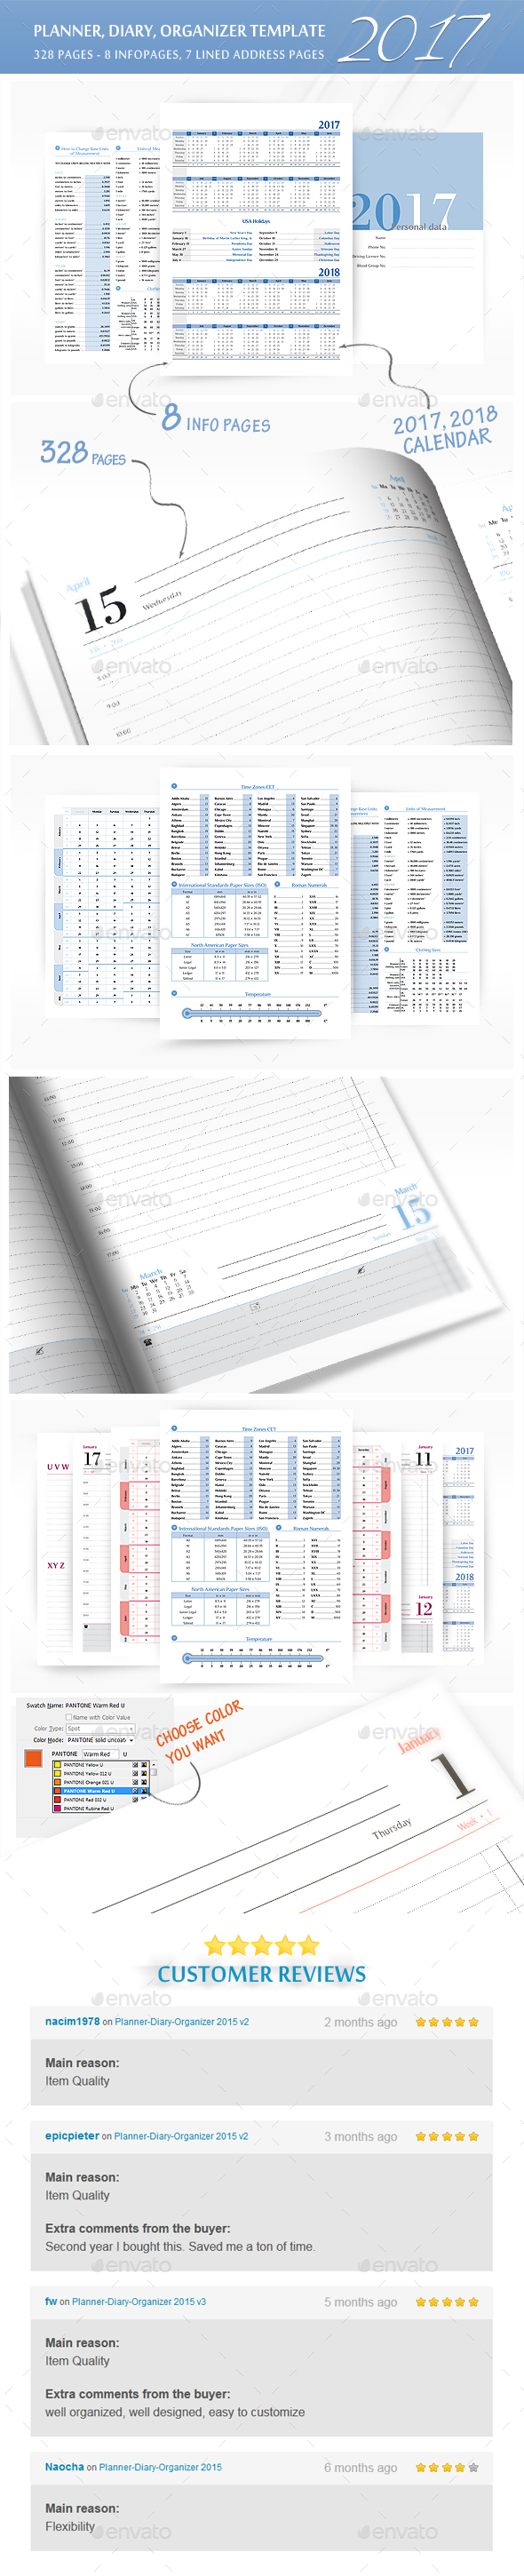 planner diary organizer 2017 by leroiv graphicriver